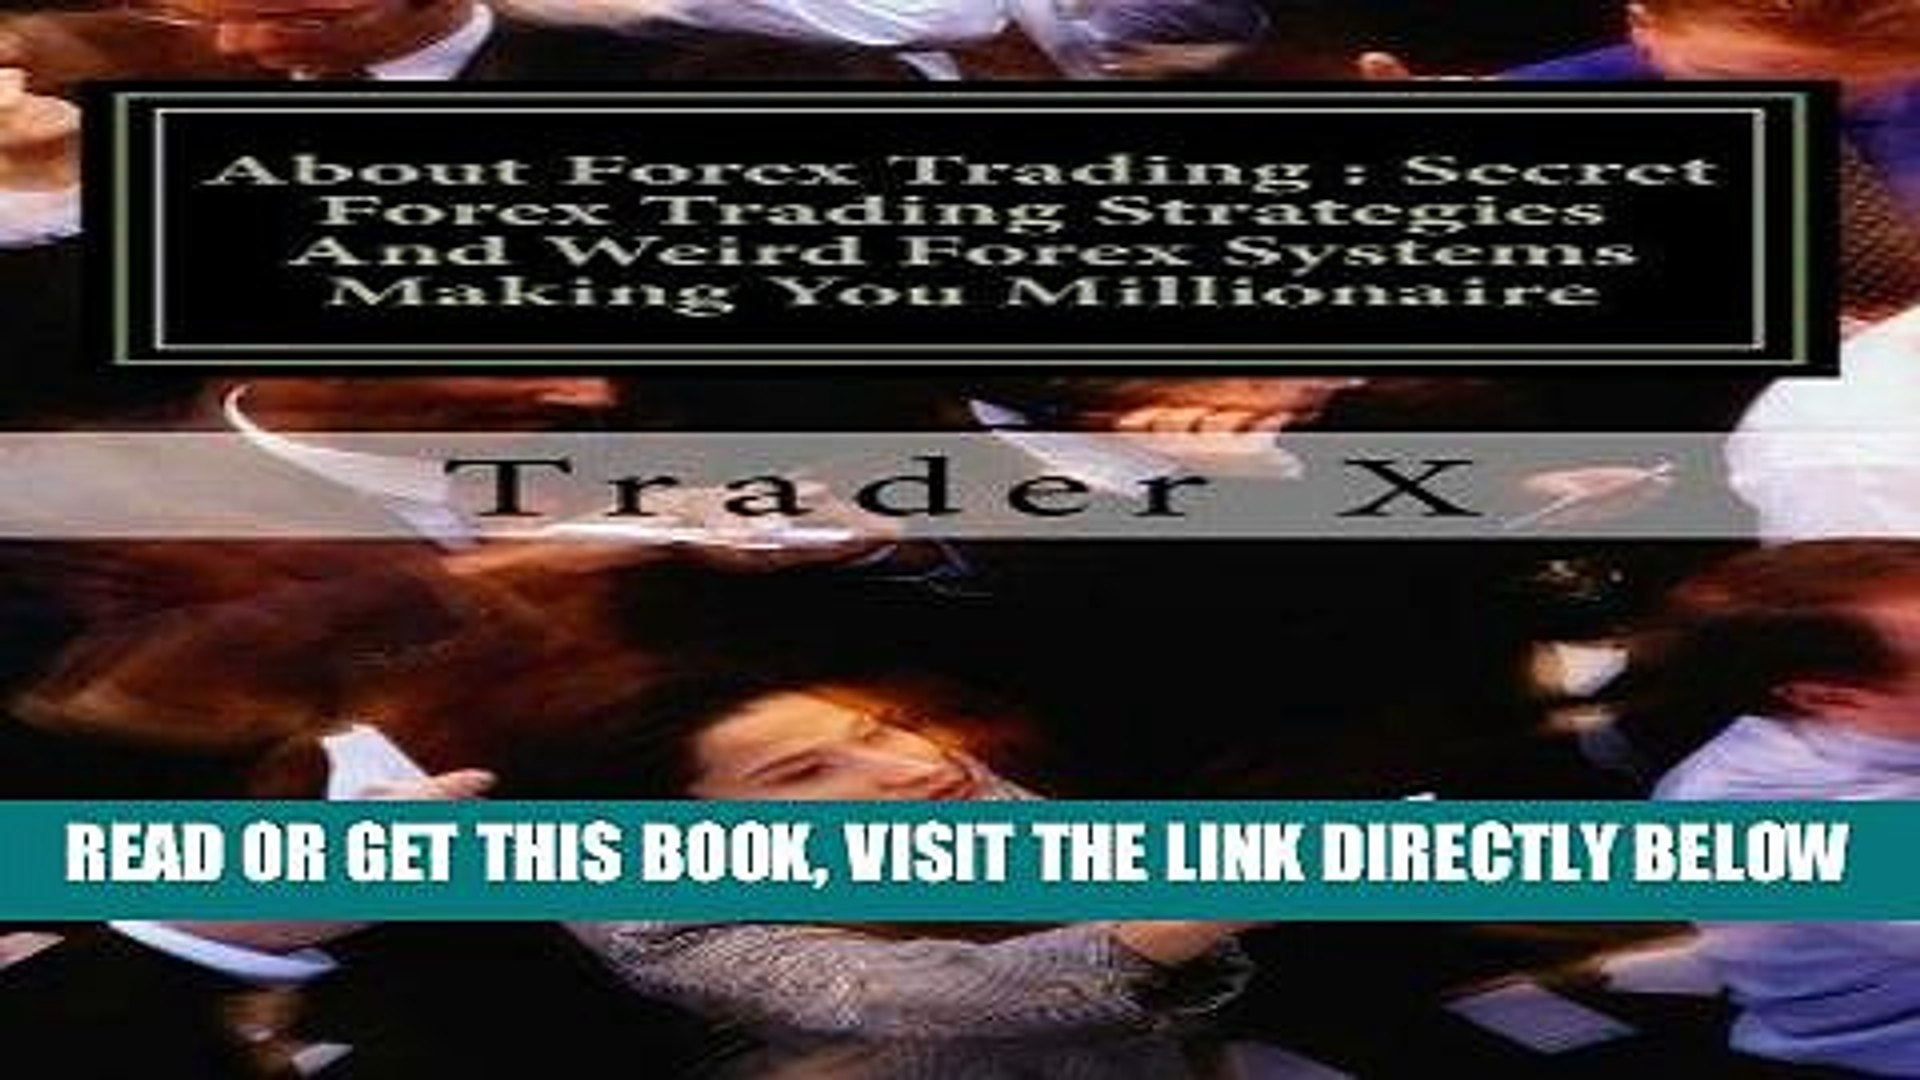 [New] Ebook About Forex Trading : Secret Forex Trading Strategies And Weird Forex Systems Making